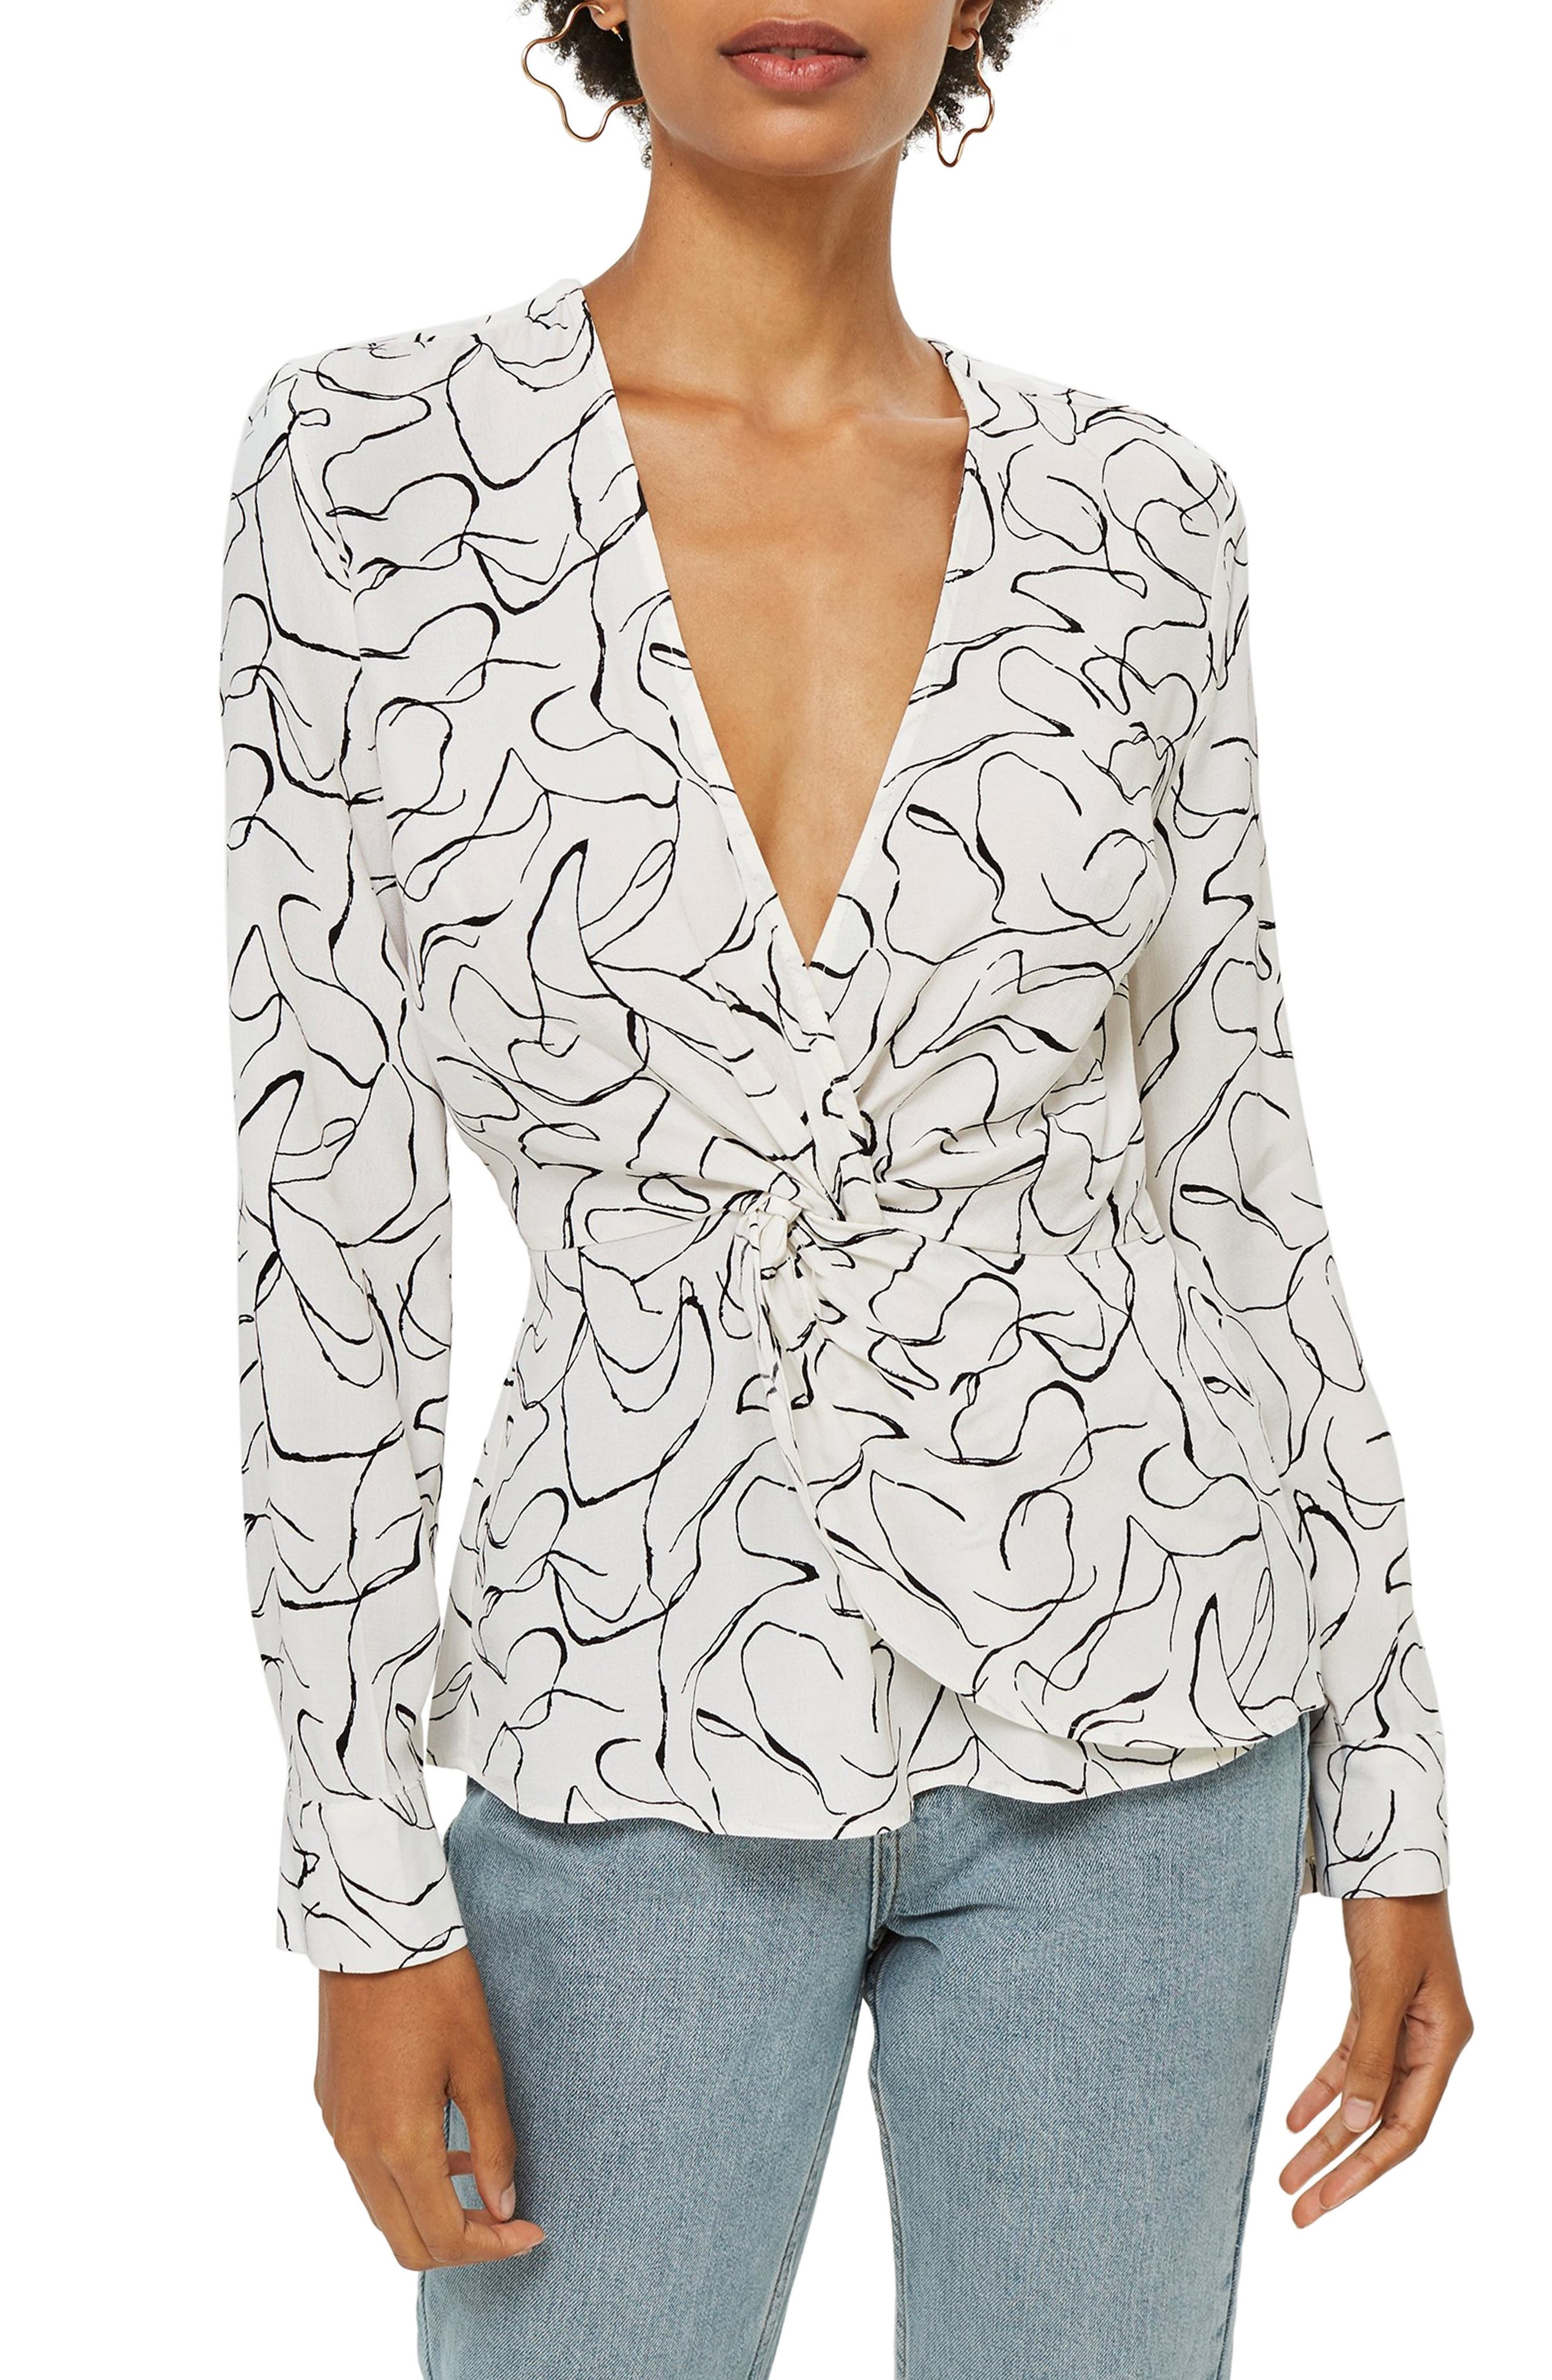 Obsession Twist Front Blouse,                             Main thumbnail 1, color,                             IVORY